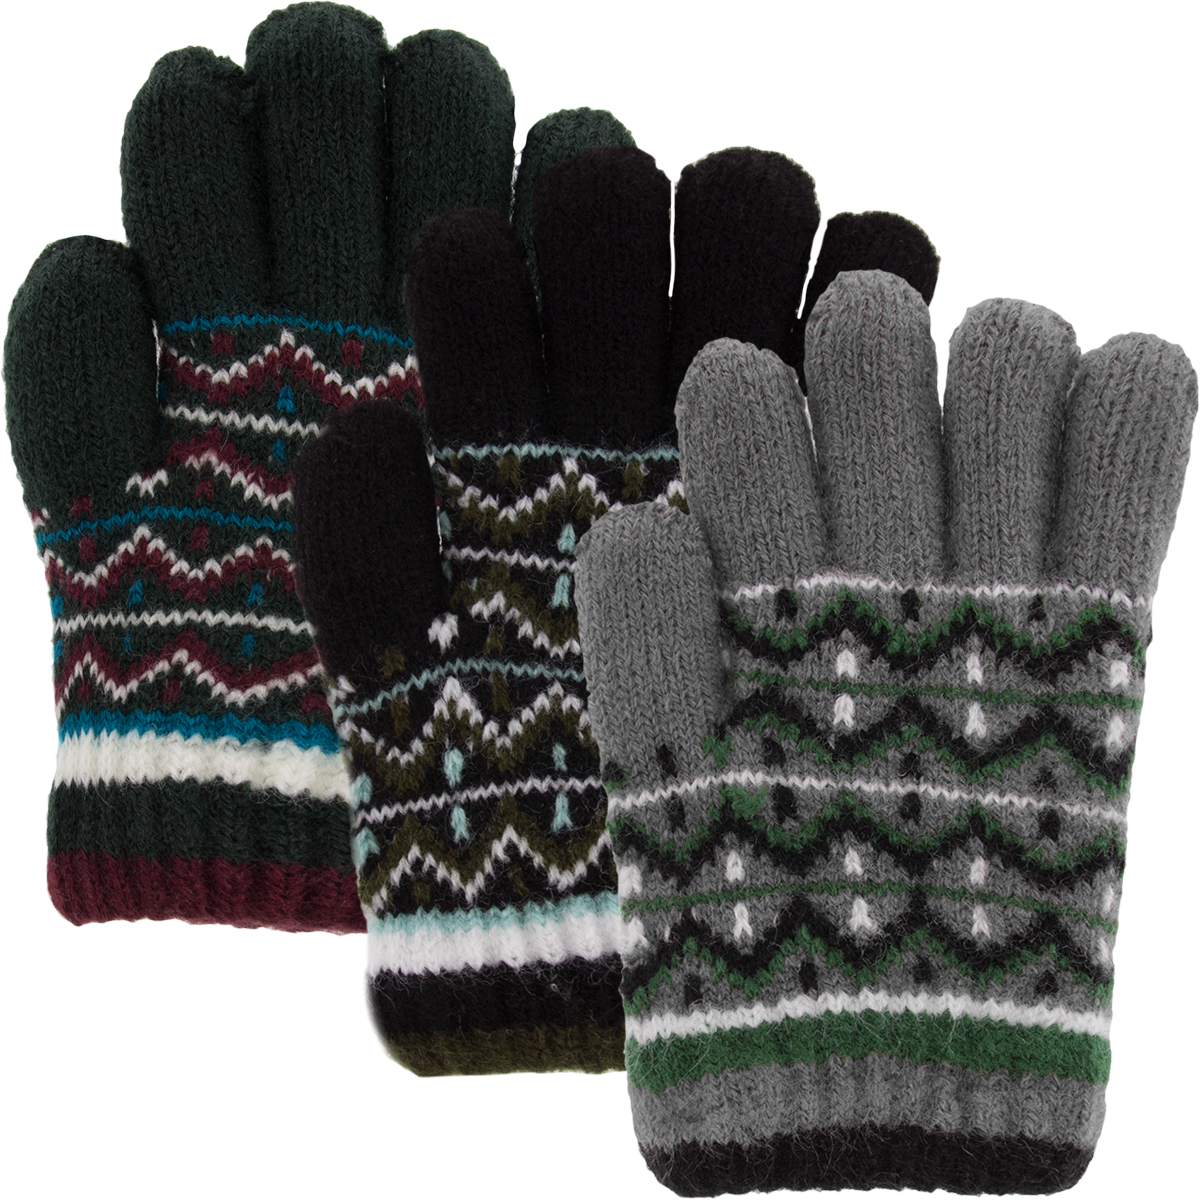 Classic Fashion (3 Pairs) Boys Winter Gloves, Acrylic Kids Gloves With Soft Warm Knitted... by